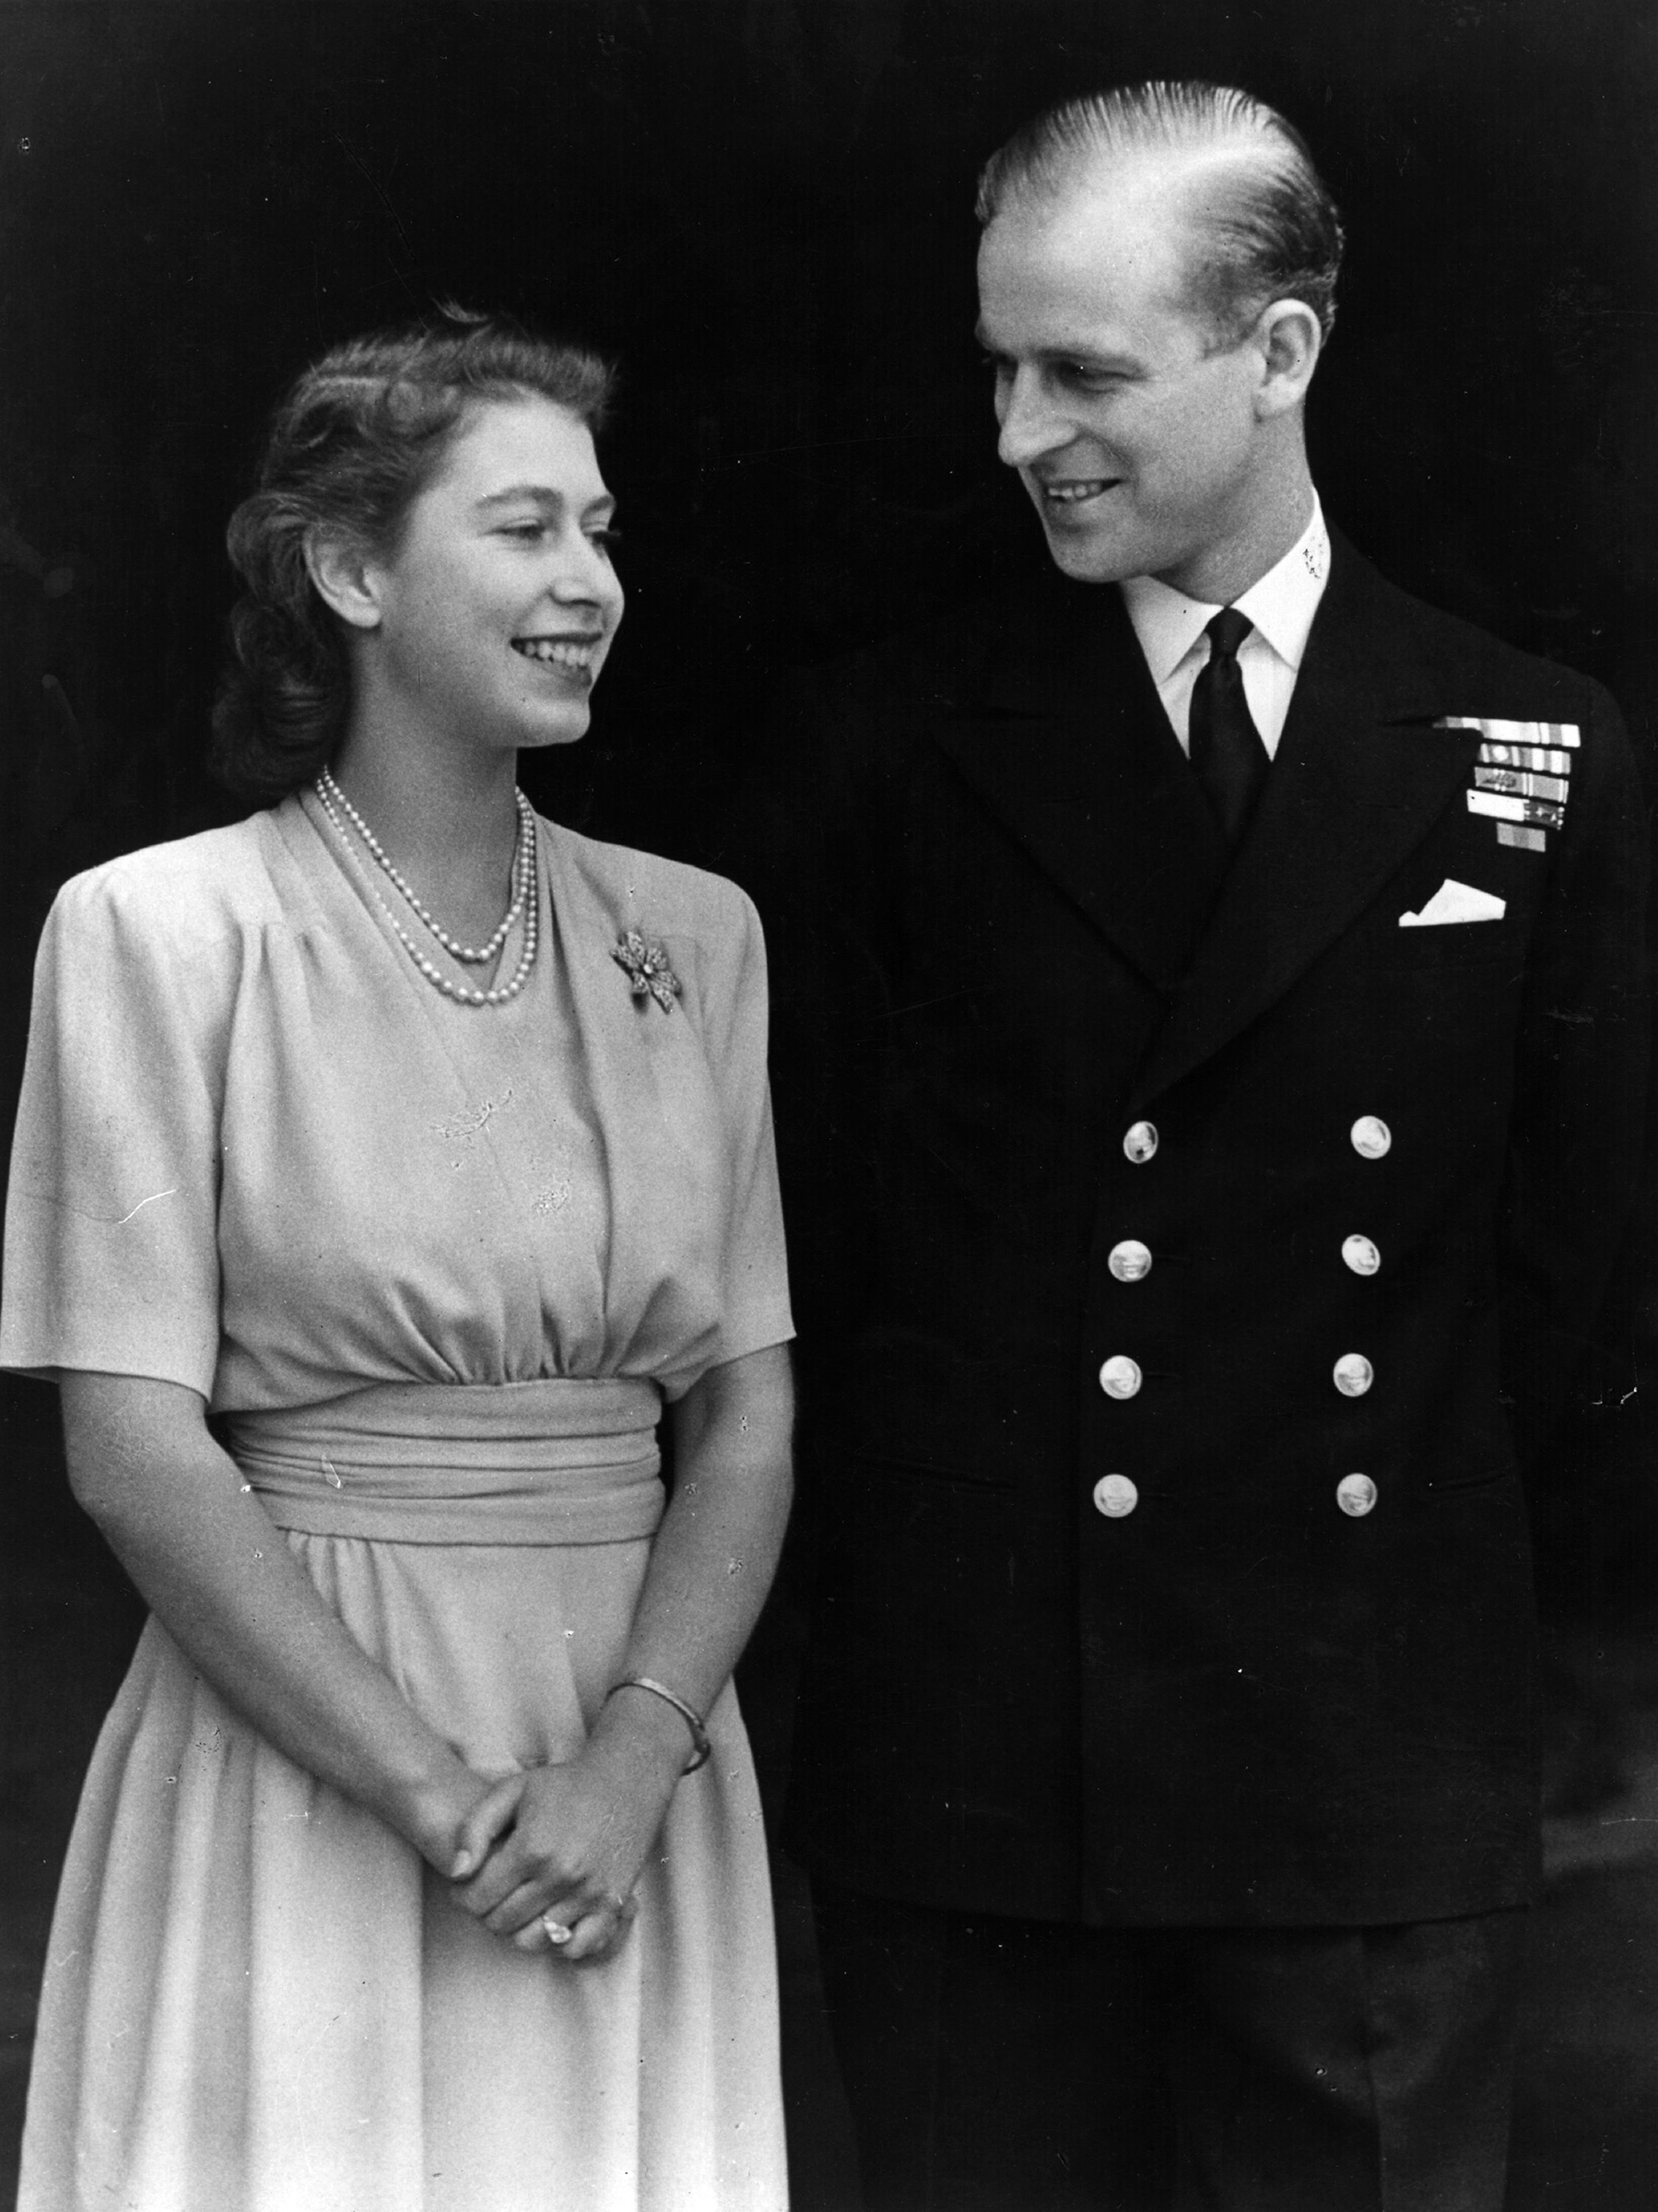 Princess Elizabeth and Philip Mountbatten on the occasion of their engagement at Buckingham Palace in London.